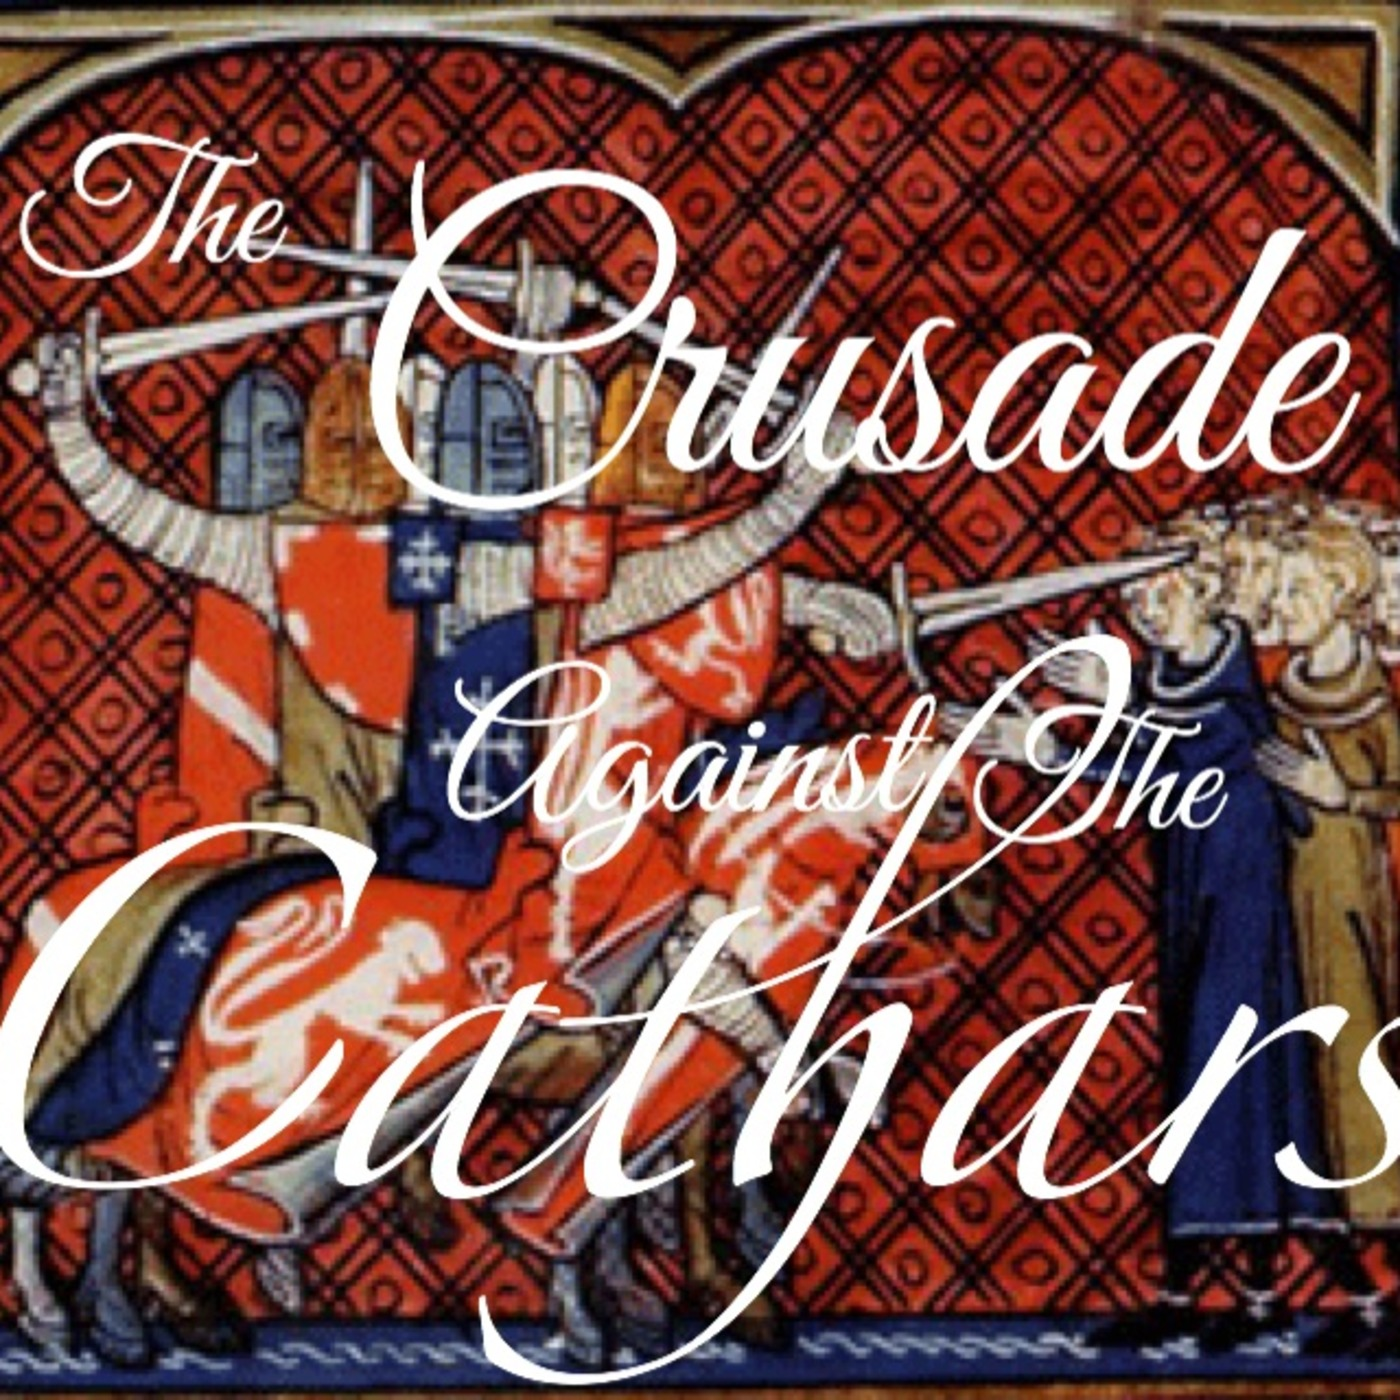 Episode 188 - The Crusade against the Cathars